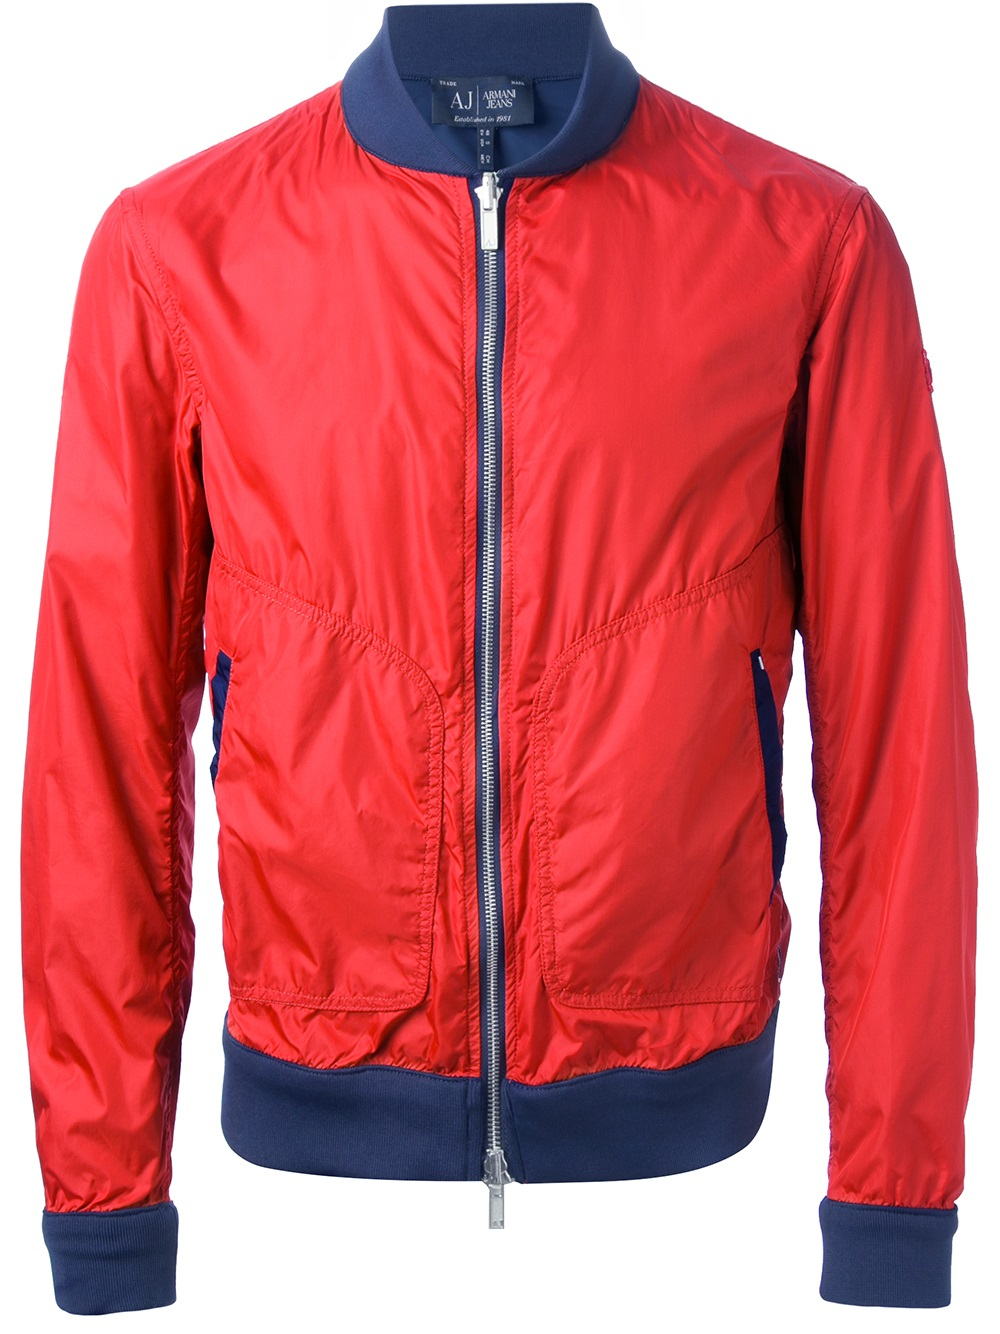 ac7d558f6 Armani Jeans Red Reversible Bomber Jacket for men